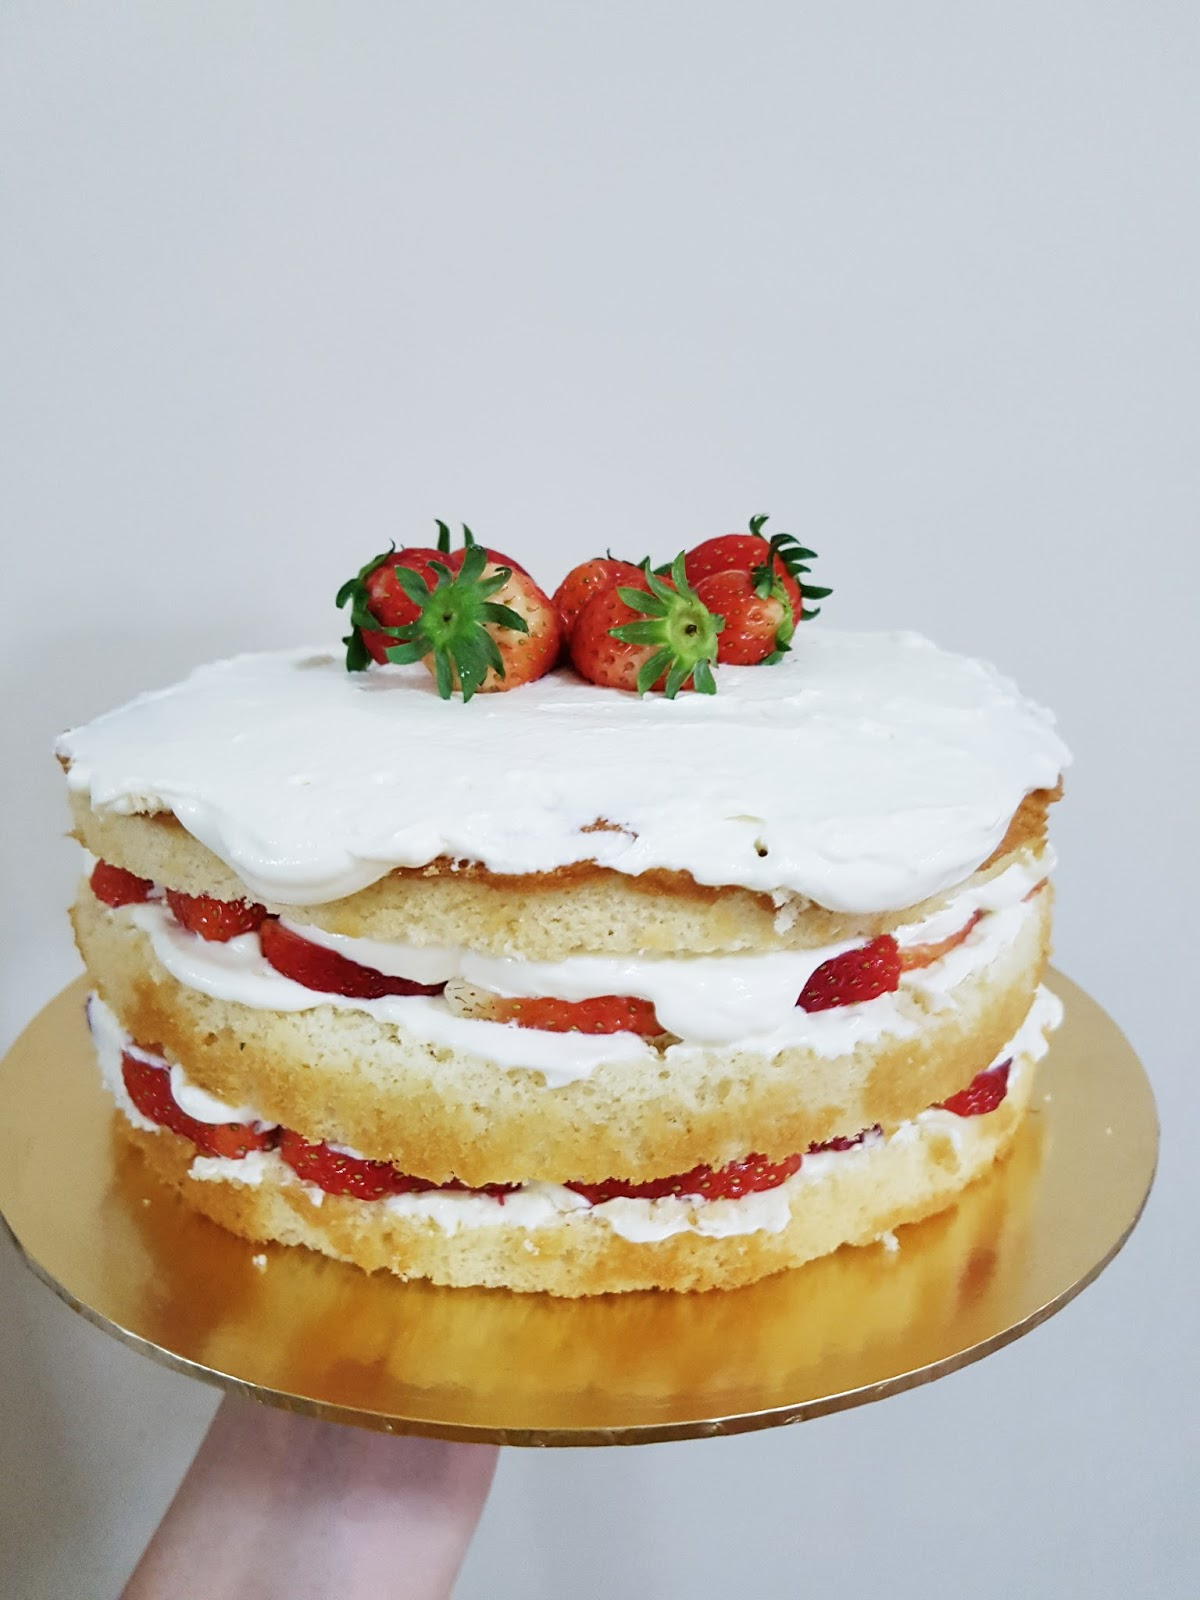 Korean Strawberry Shortcake with Mascarpone Cream Cheese